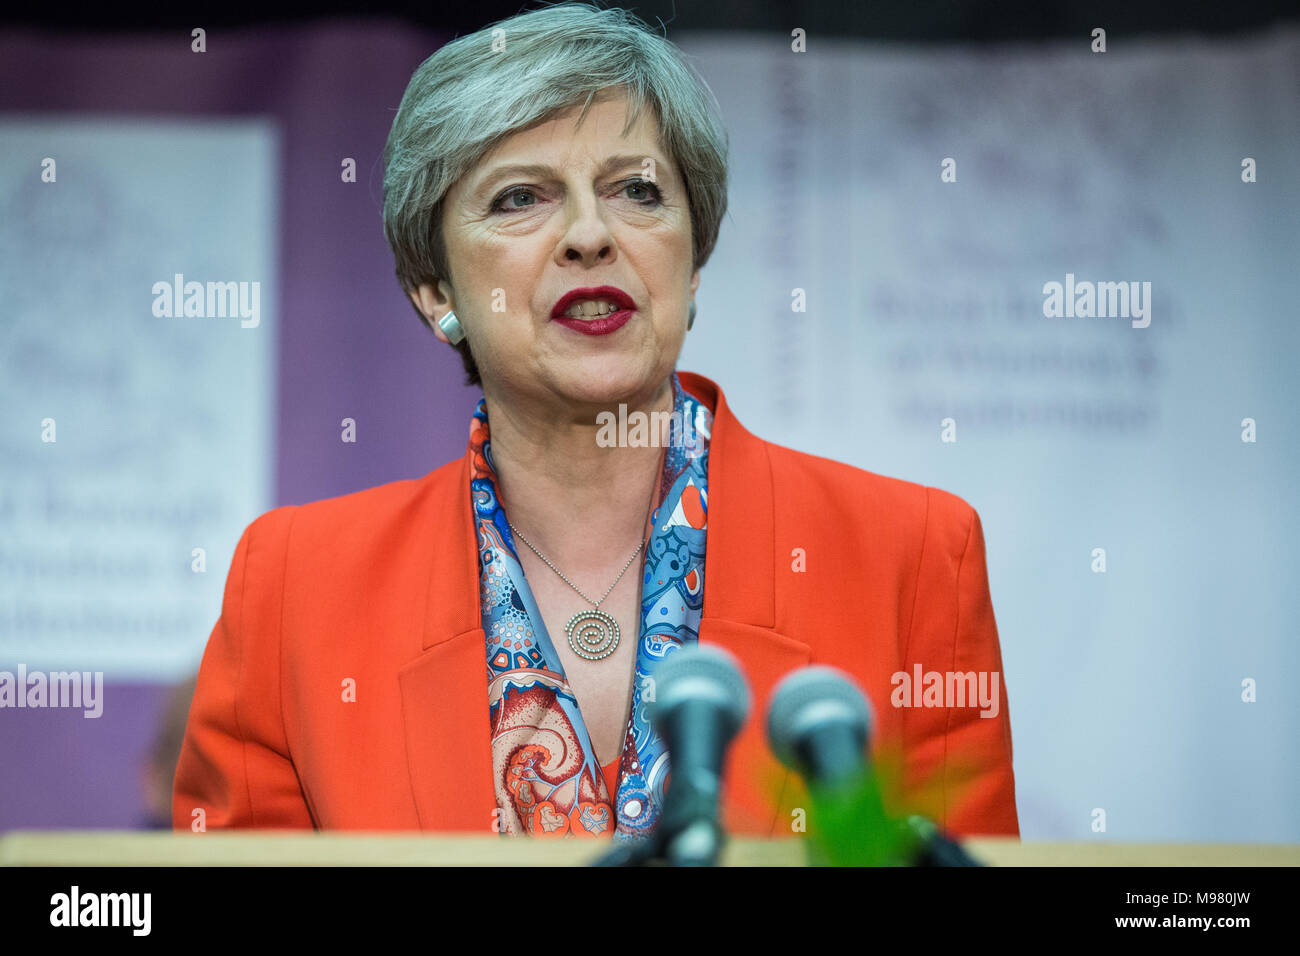 Maidenhead, UK. 8th June, 2017. Theresa May makes her acceptance speech as she is reelected as the Member of Parliament for Maidenhead. - Stock Image